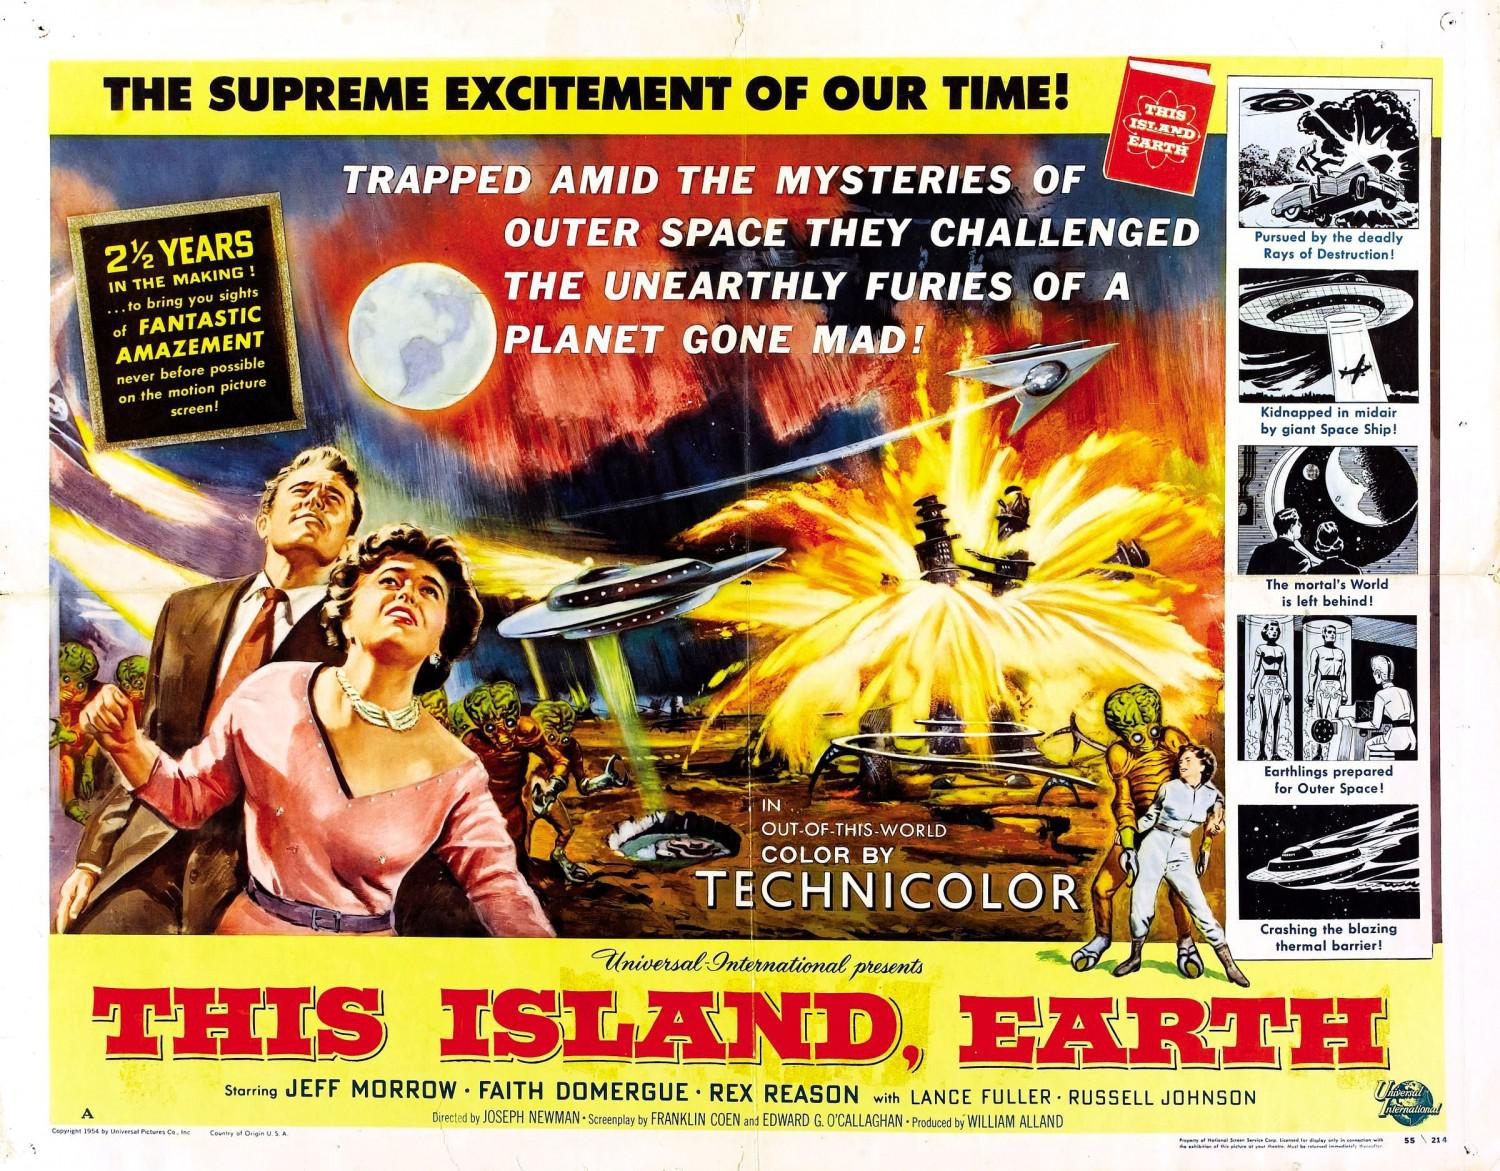 This Island Earth - Cittadino dello Spazio - Metaluna 4 - Two mortals trapped in outer space, changeling the unearthly furies of an autlaw planet gone mad - Feff Morrow - Faith Domergue - Rex Reason - old scifi film poster